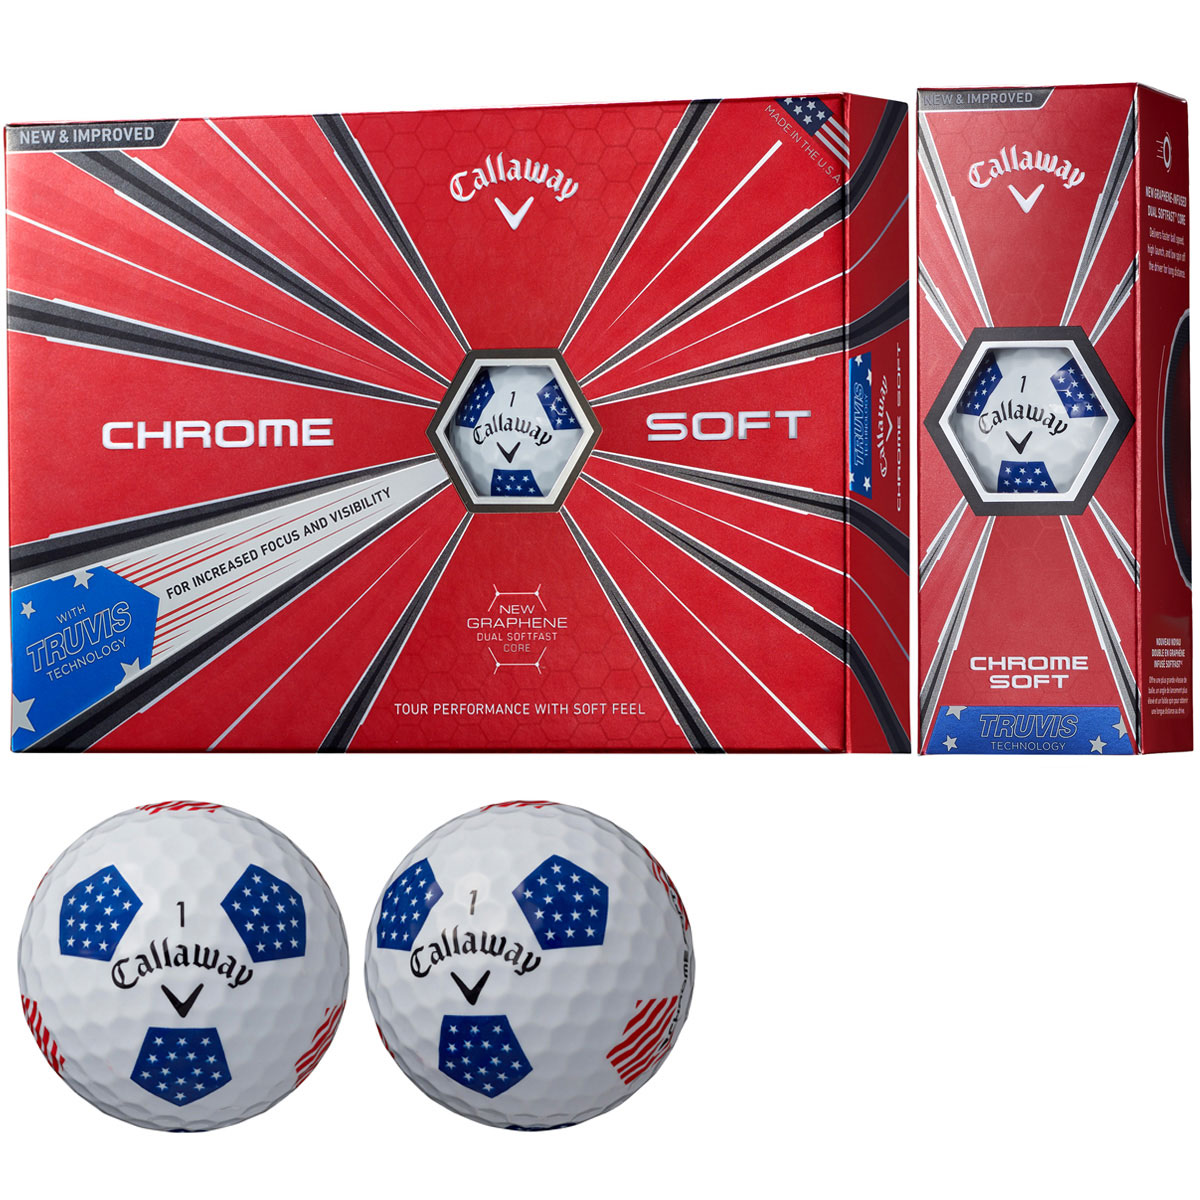 CHROME SOFT 18 TRUVIS ボール